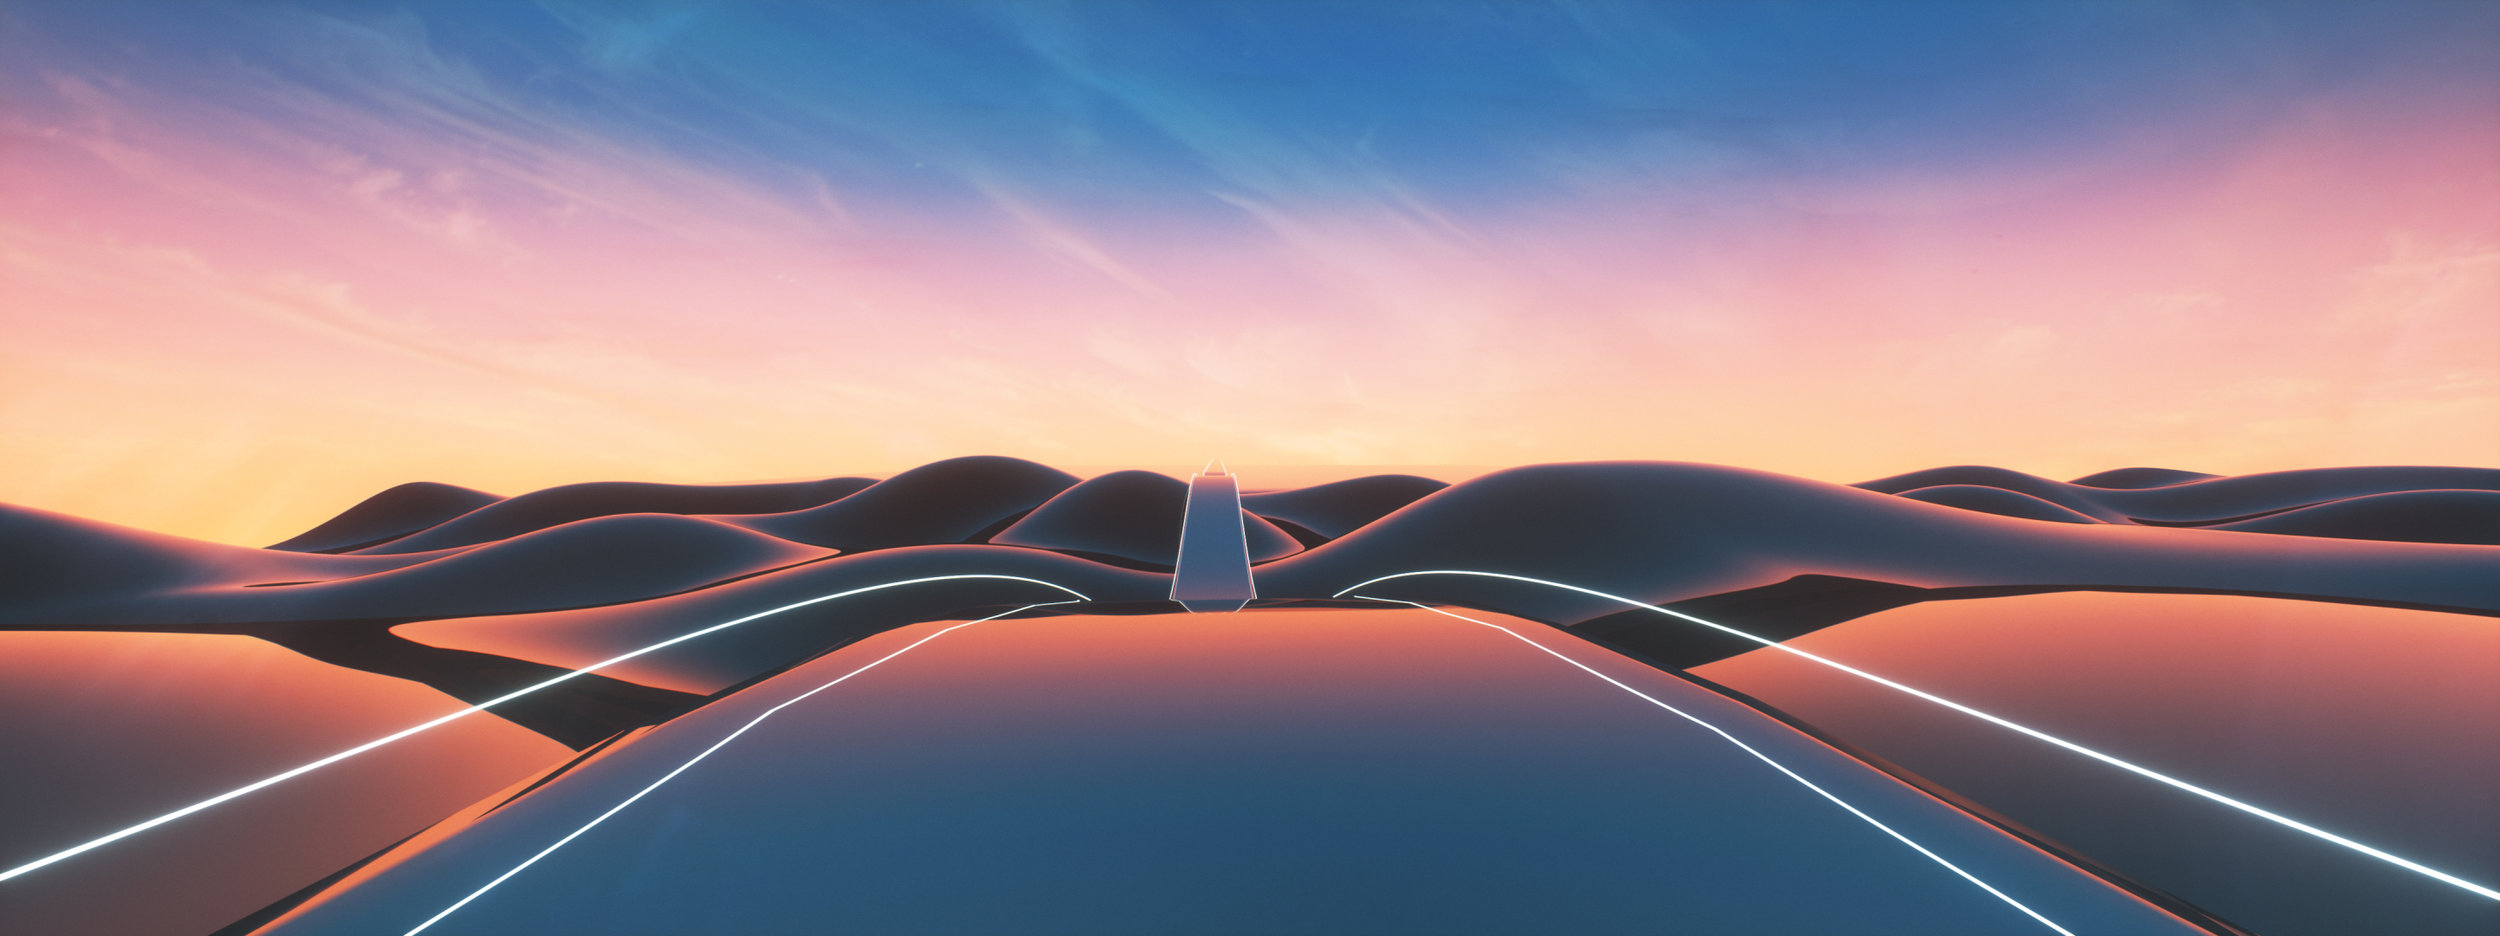 Acura Mood Roads by Peter Clark